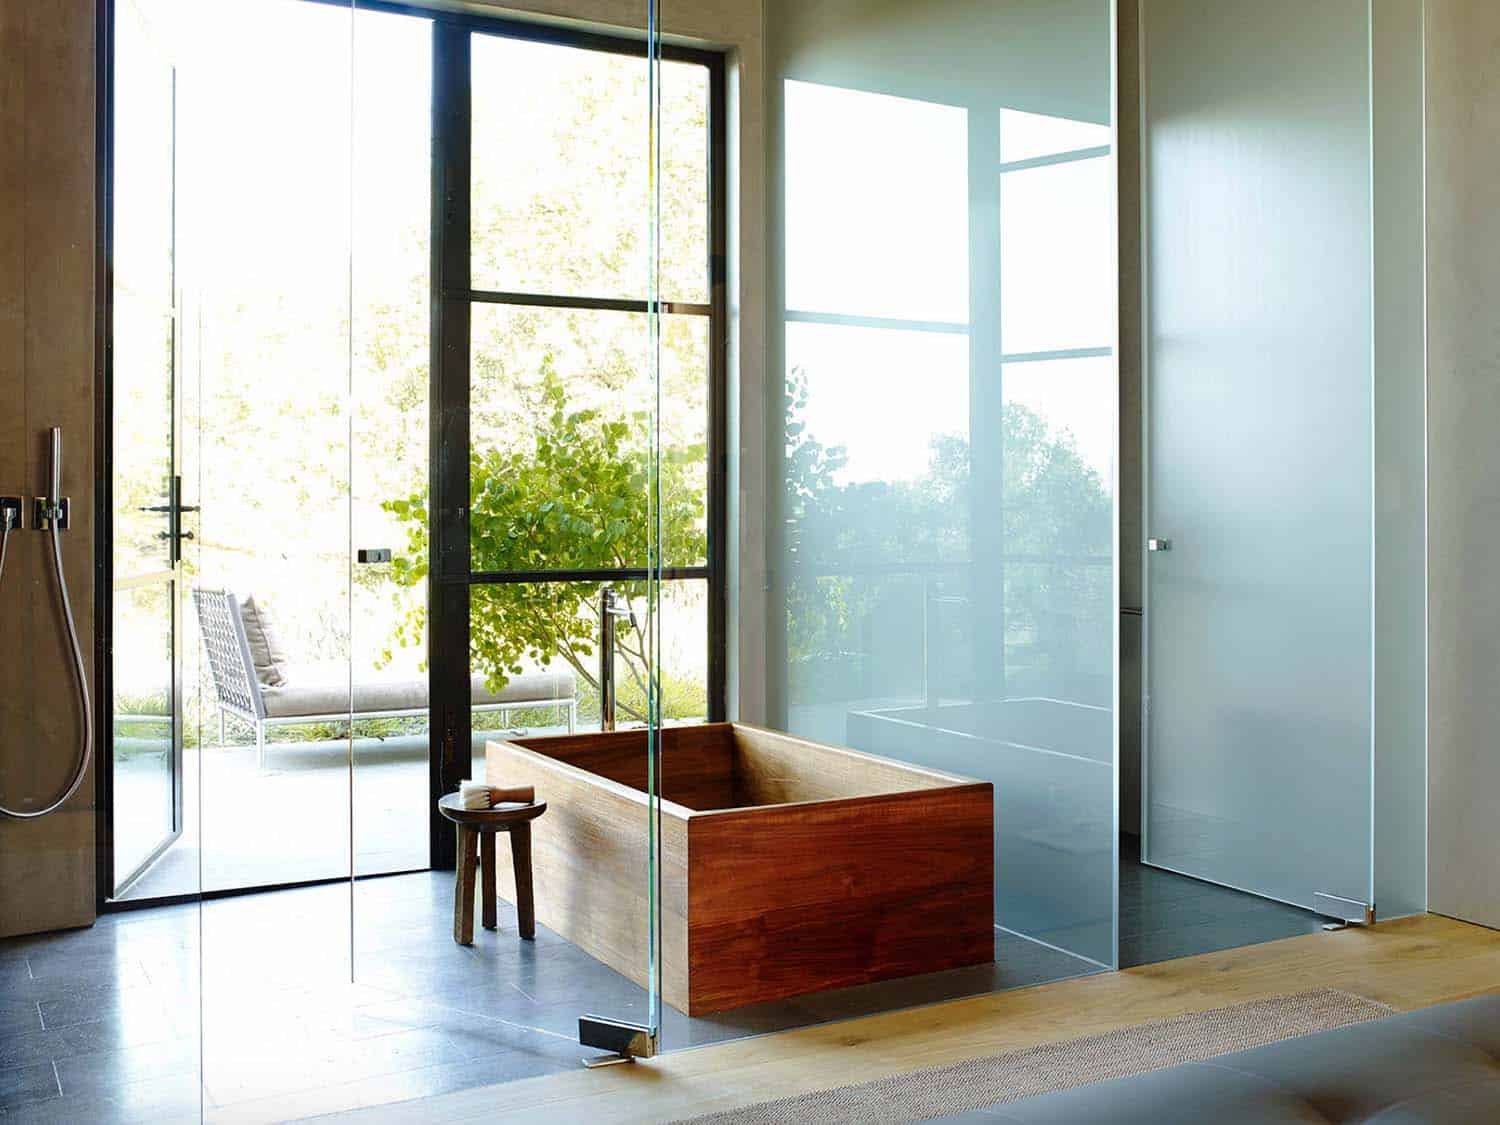 Contemporary Courtyard House-Butler Armsden Architects-11-1 Kindesign